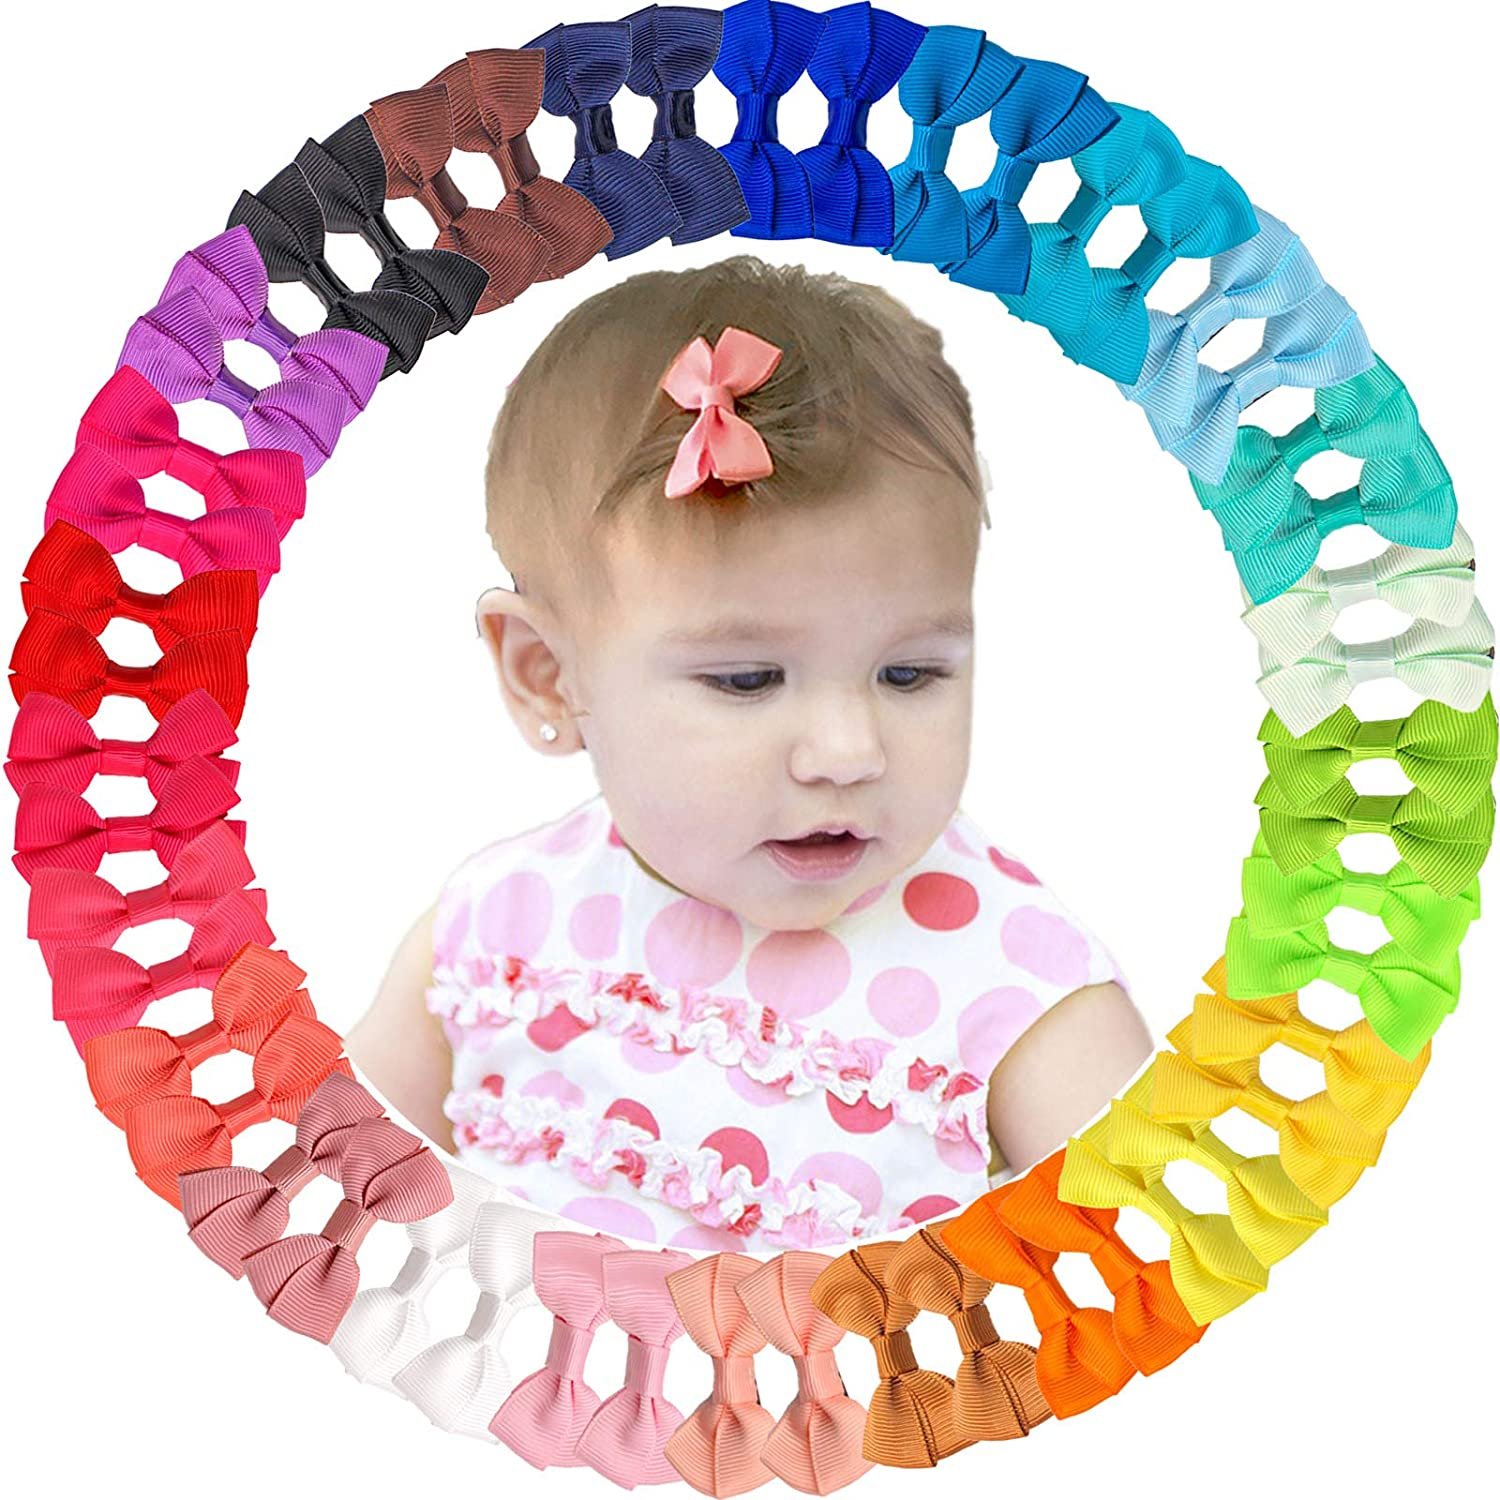 JOYOYO 50 Pieces 2 Inch Tiny Clips National uniform free Outstanding shipping Alligator Bows Hair for